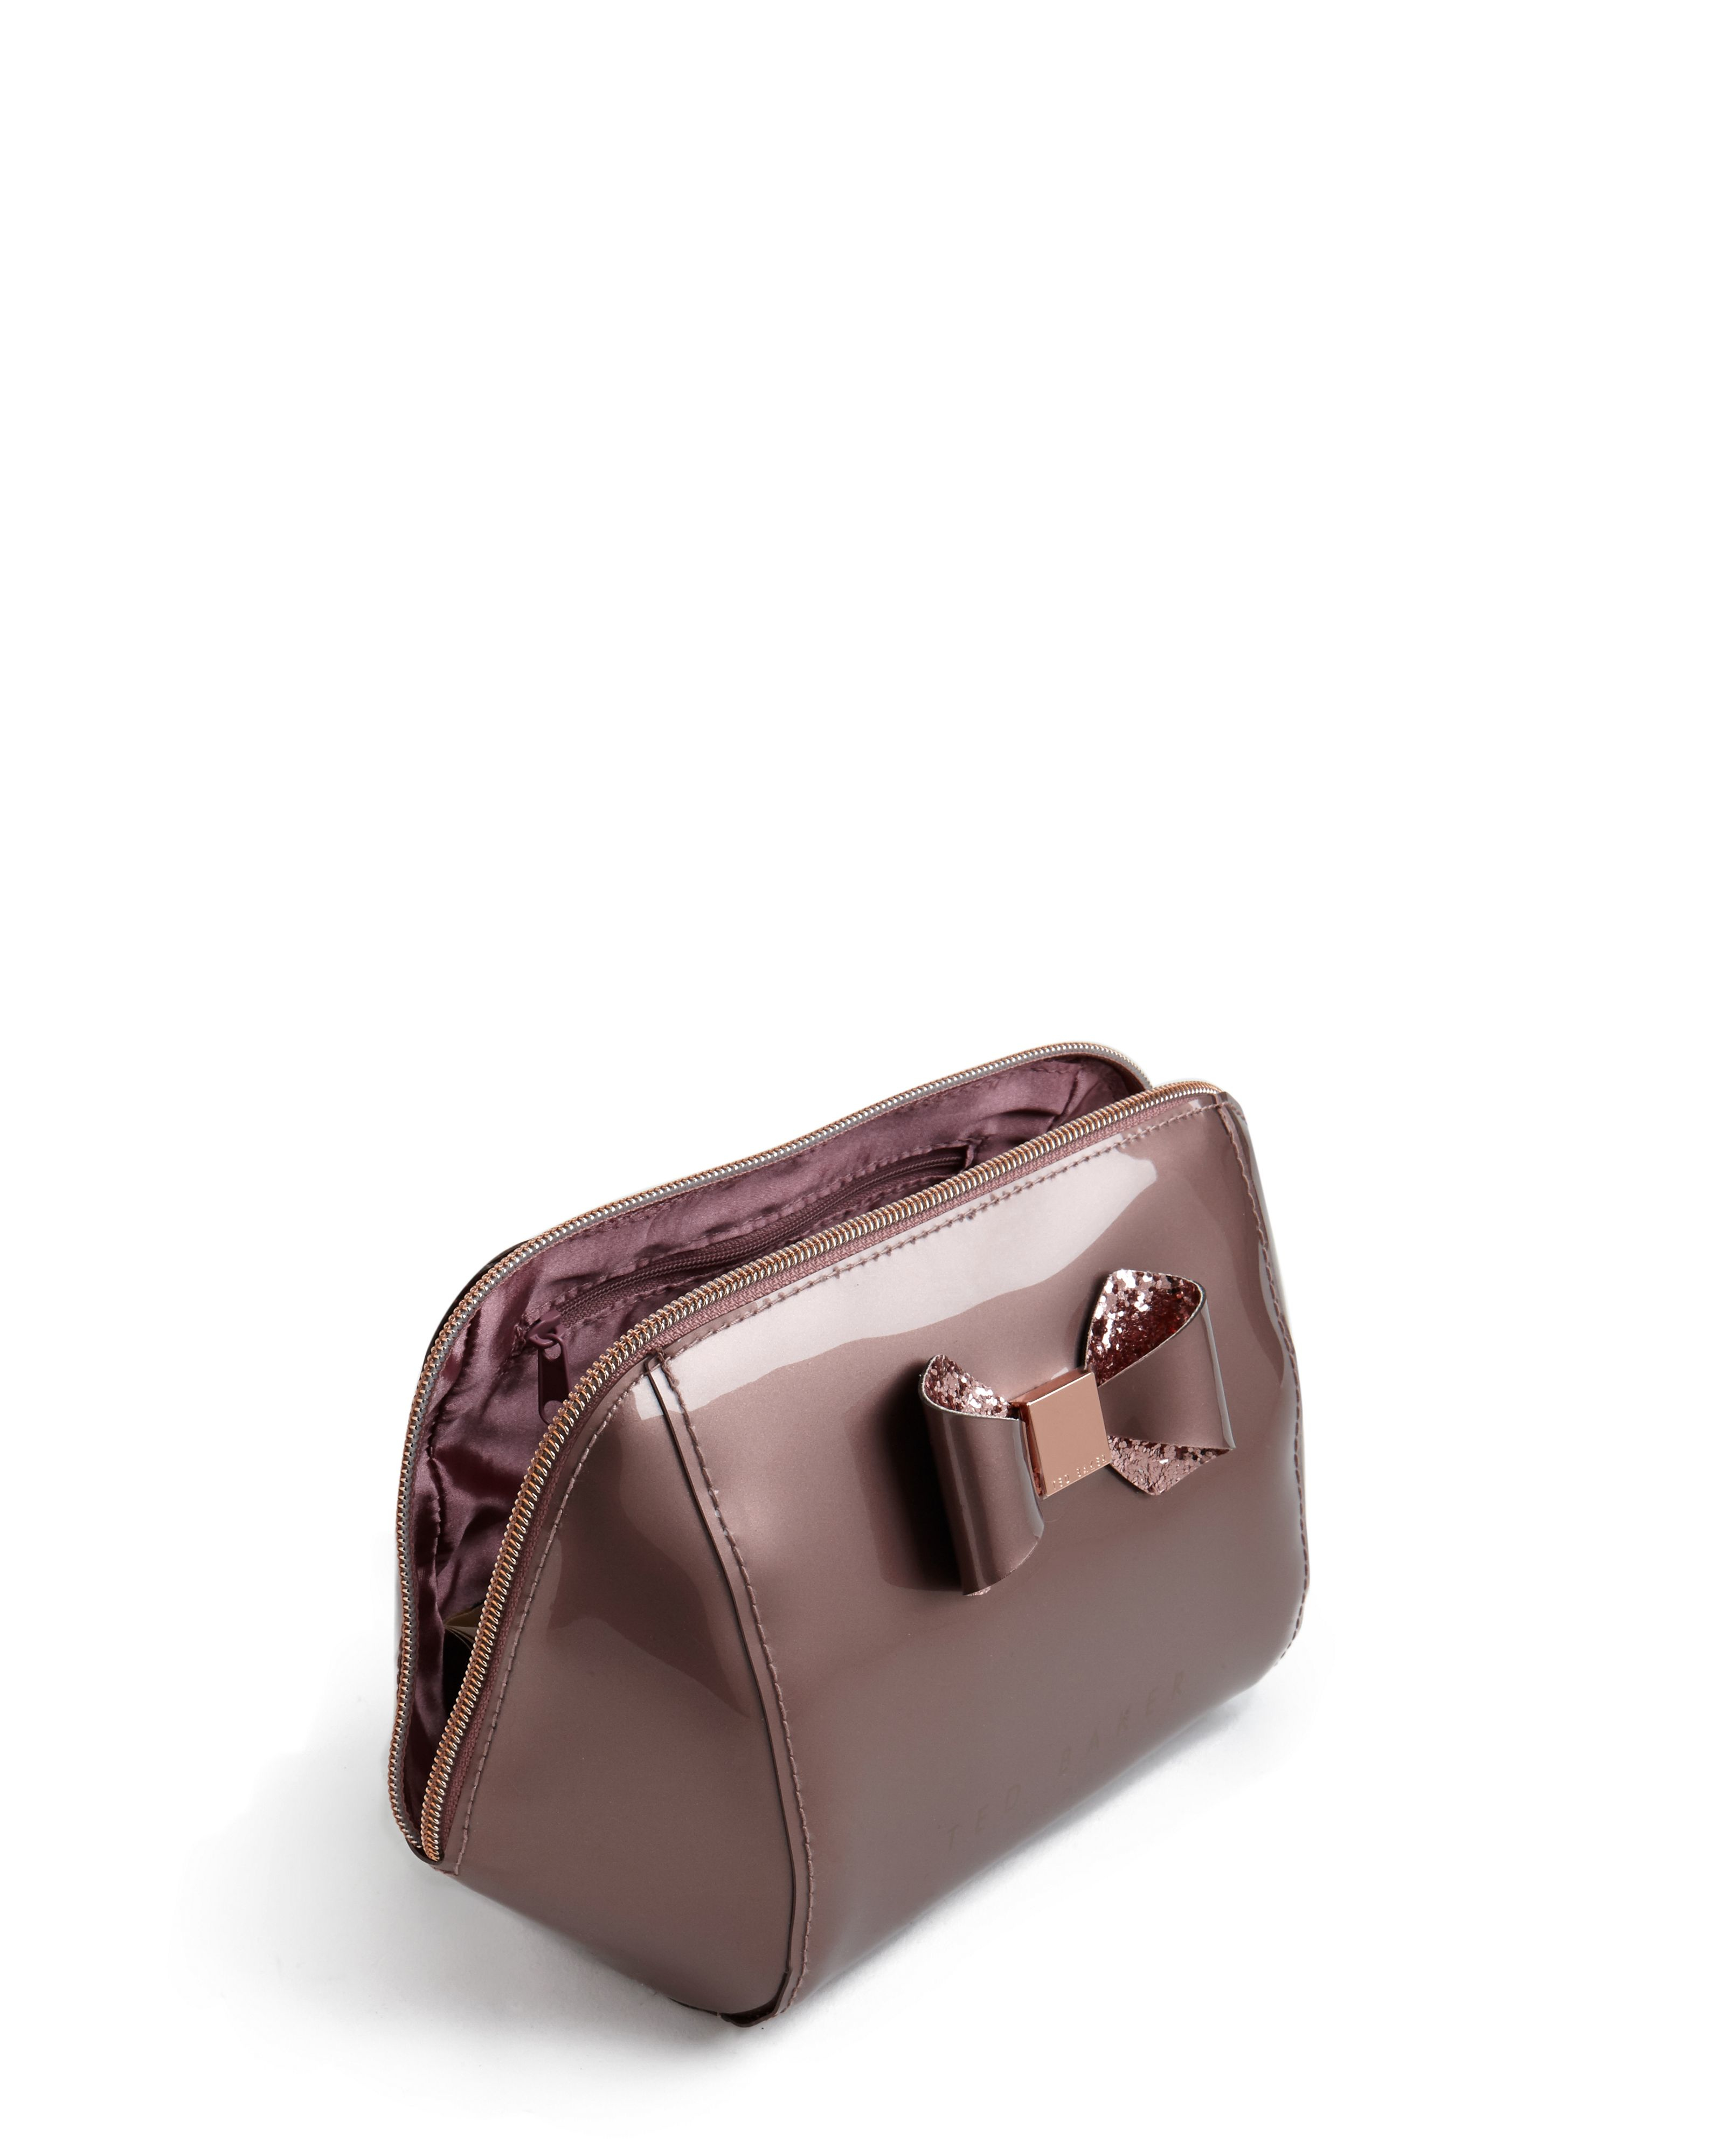 0b1f5ac735e34 Ted Baker Pink Beauty Bag Gift Set 16 11 396808 Boots Ted Baker Womens  Sps25 01